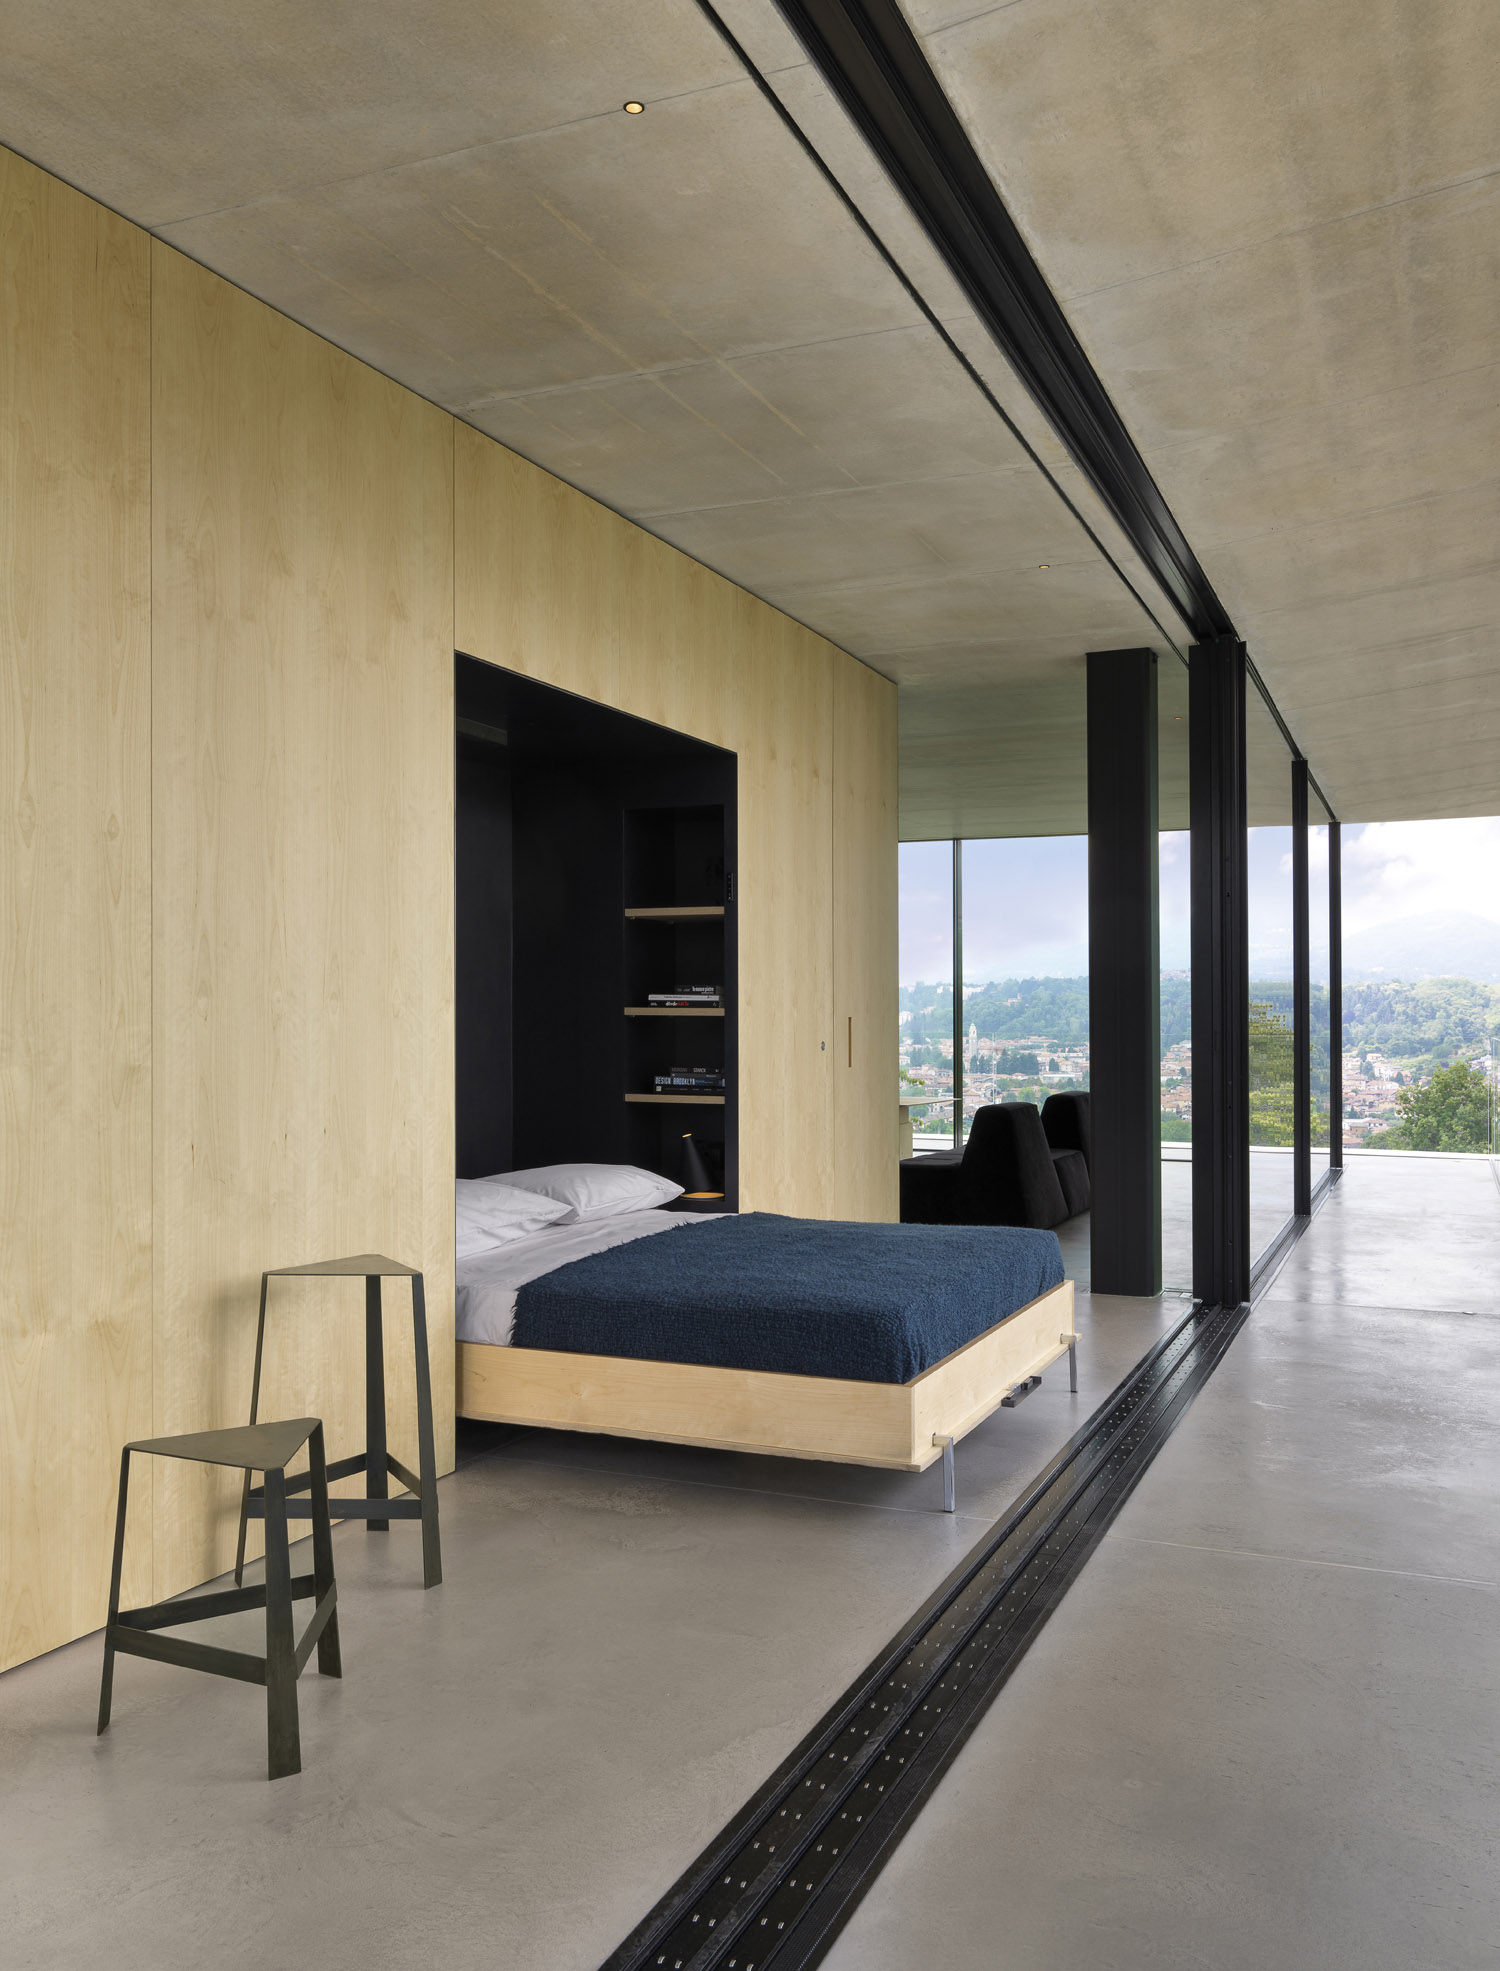 Integrated bed Matteo Piazza}